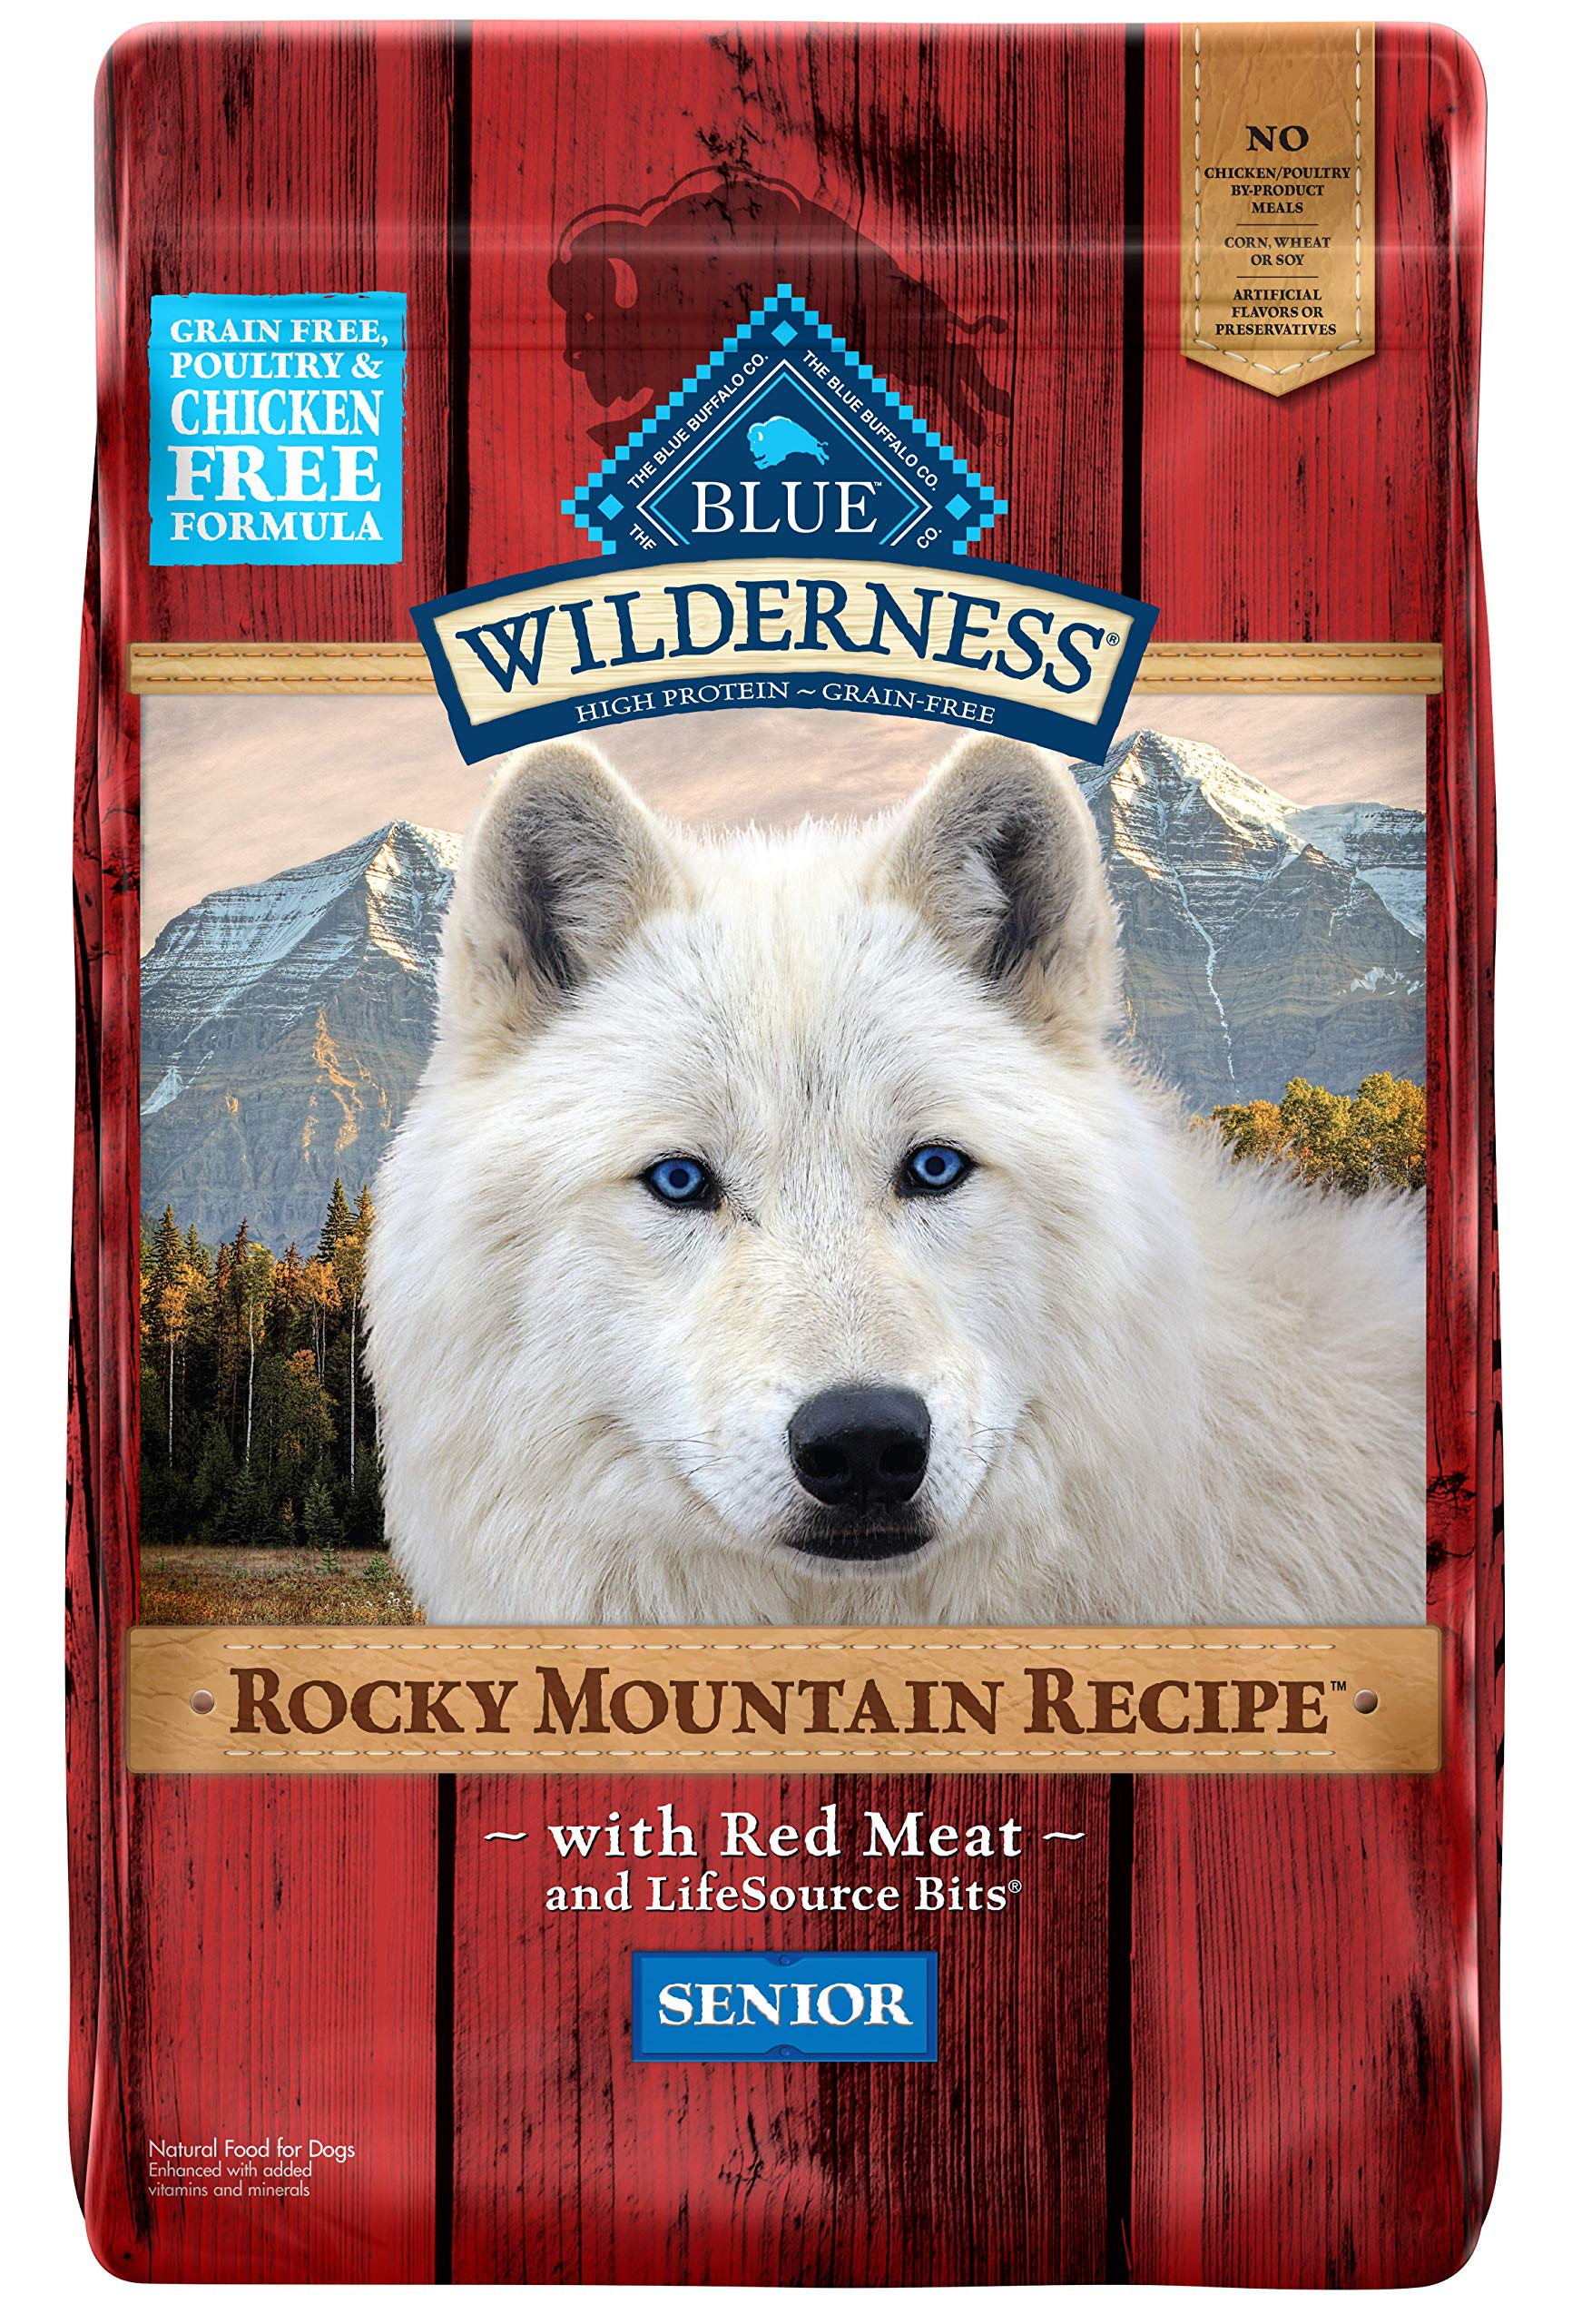 Blue Buffalo Wilderness Rocky Mountain Recipe High Protein Grain Free, Natural Senior Dry Dog Food, Red Meat 22-lb by Blue Buffalo